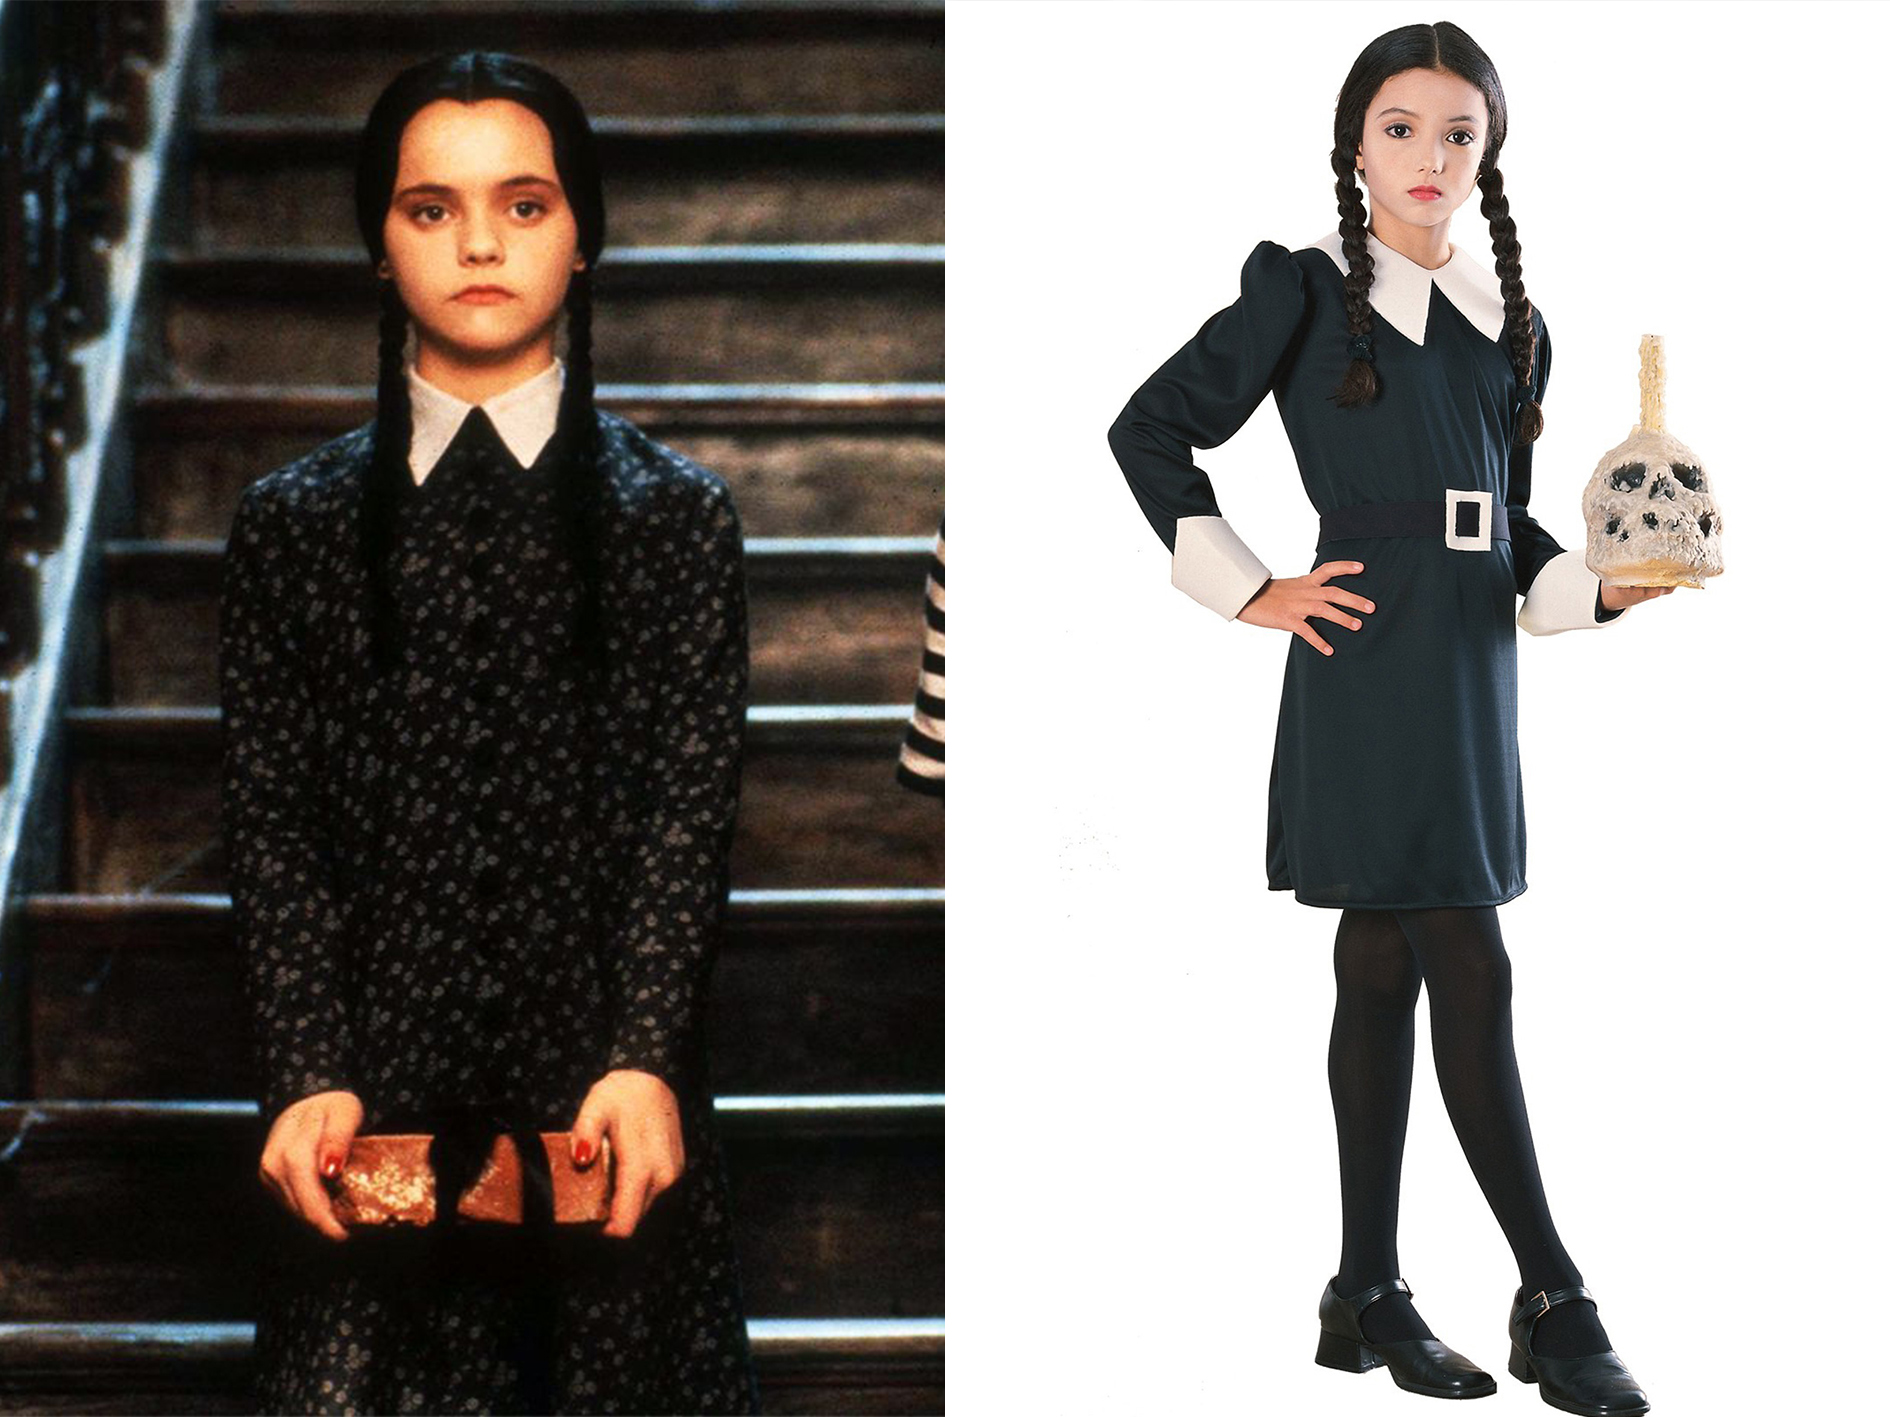 Wednesday Addams 15 Halloween Costumes Inspired By The 80s - Who Will You Go As?